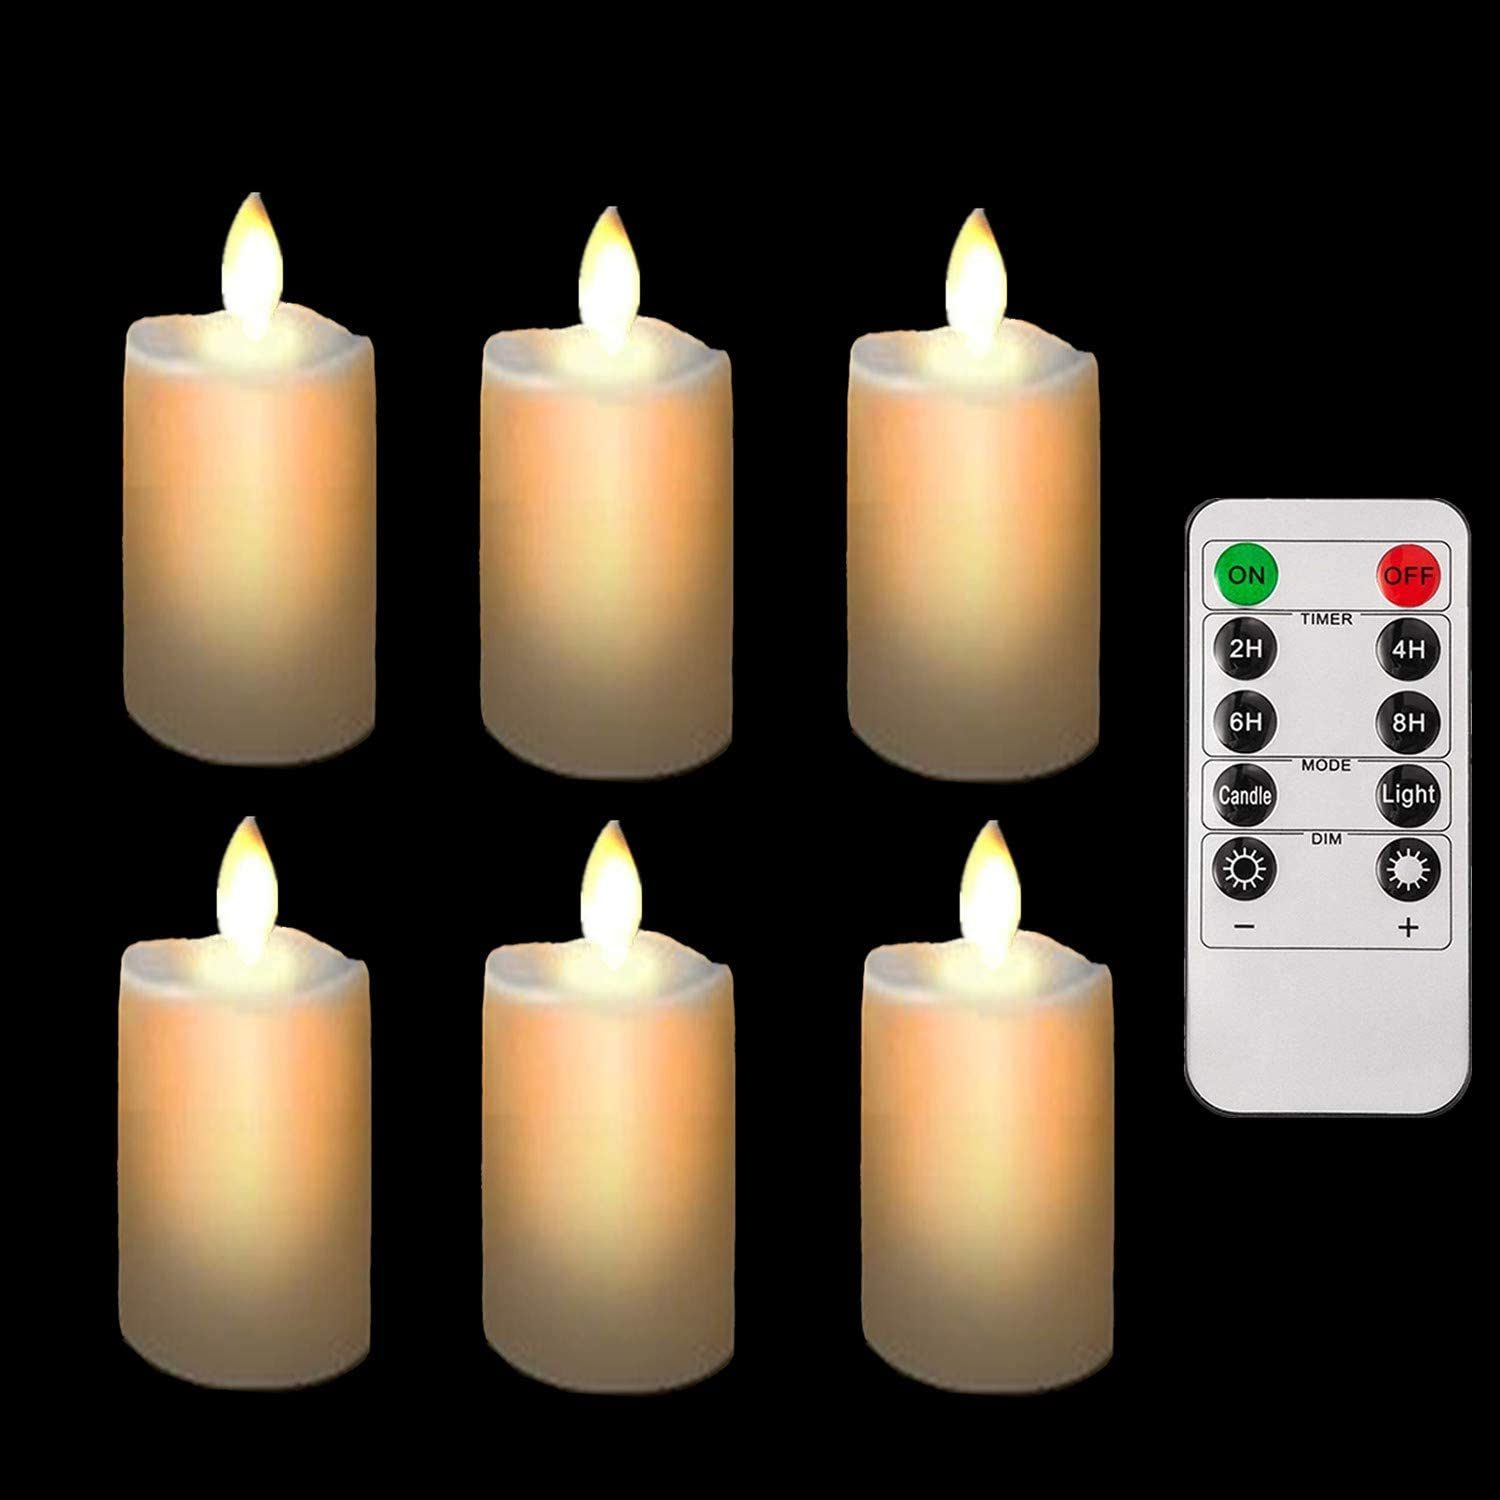 Remote Battery Operated Led Tea Lights Flameless Fake Tealight Candles Flickering Candle Light with Timers for Wedding Decorations Outdoor Decor【6 Pack】